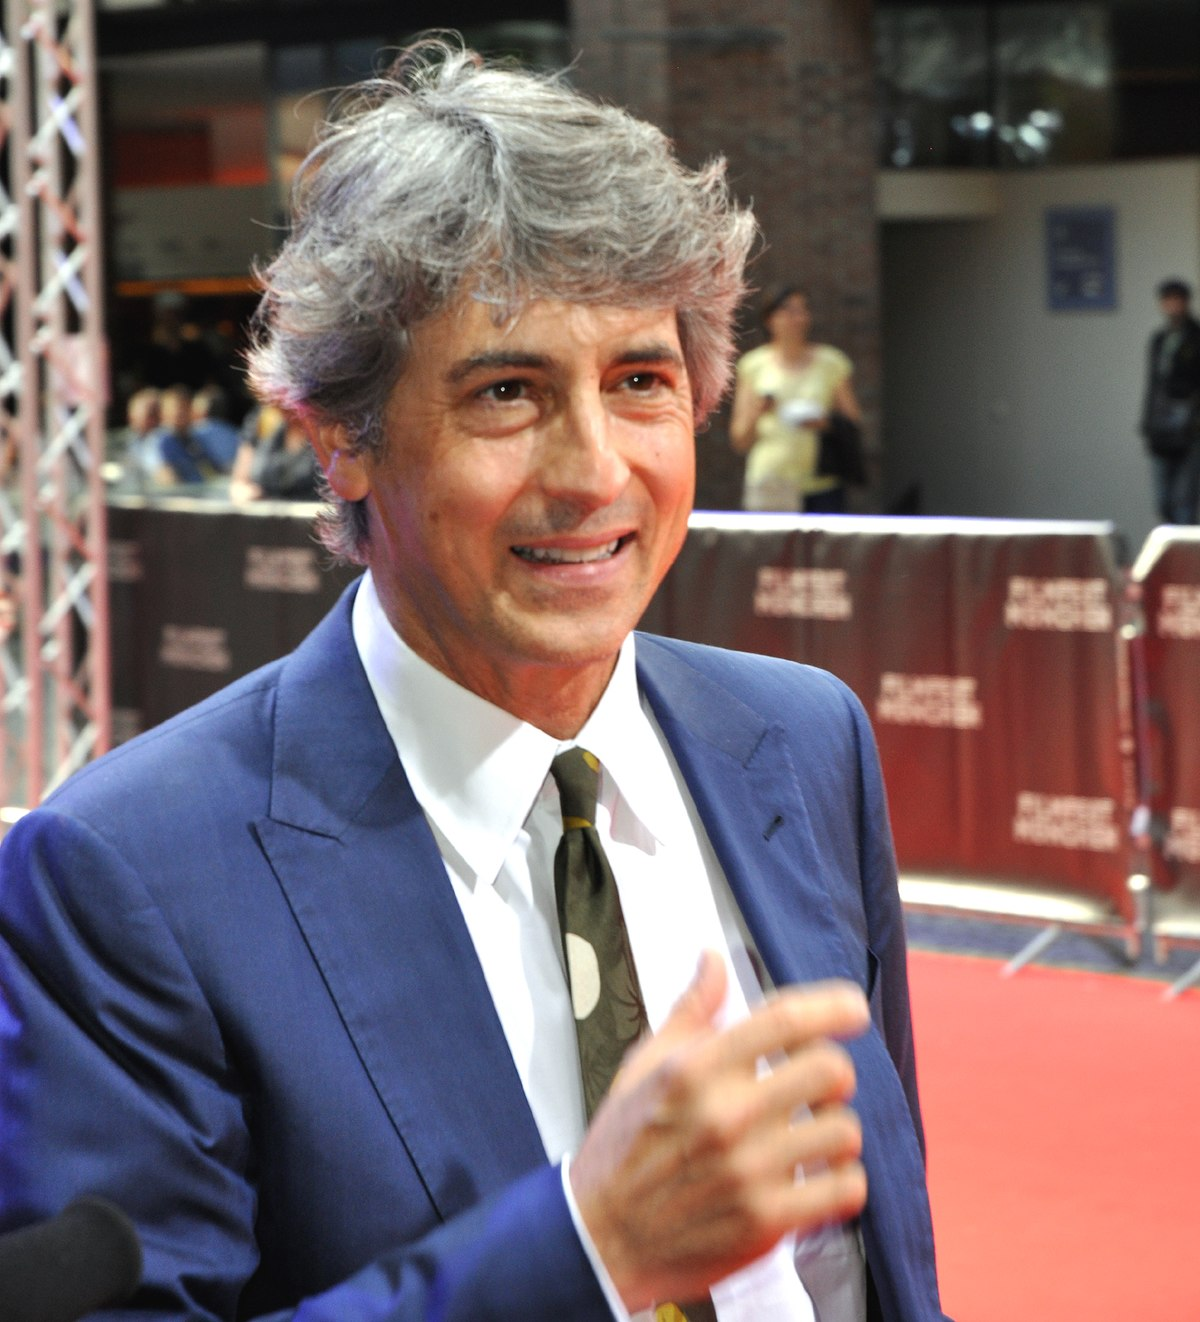 List Of Awards And Nominations Received By Alexander Payne Wikipedia